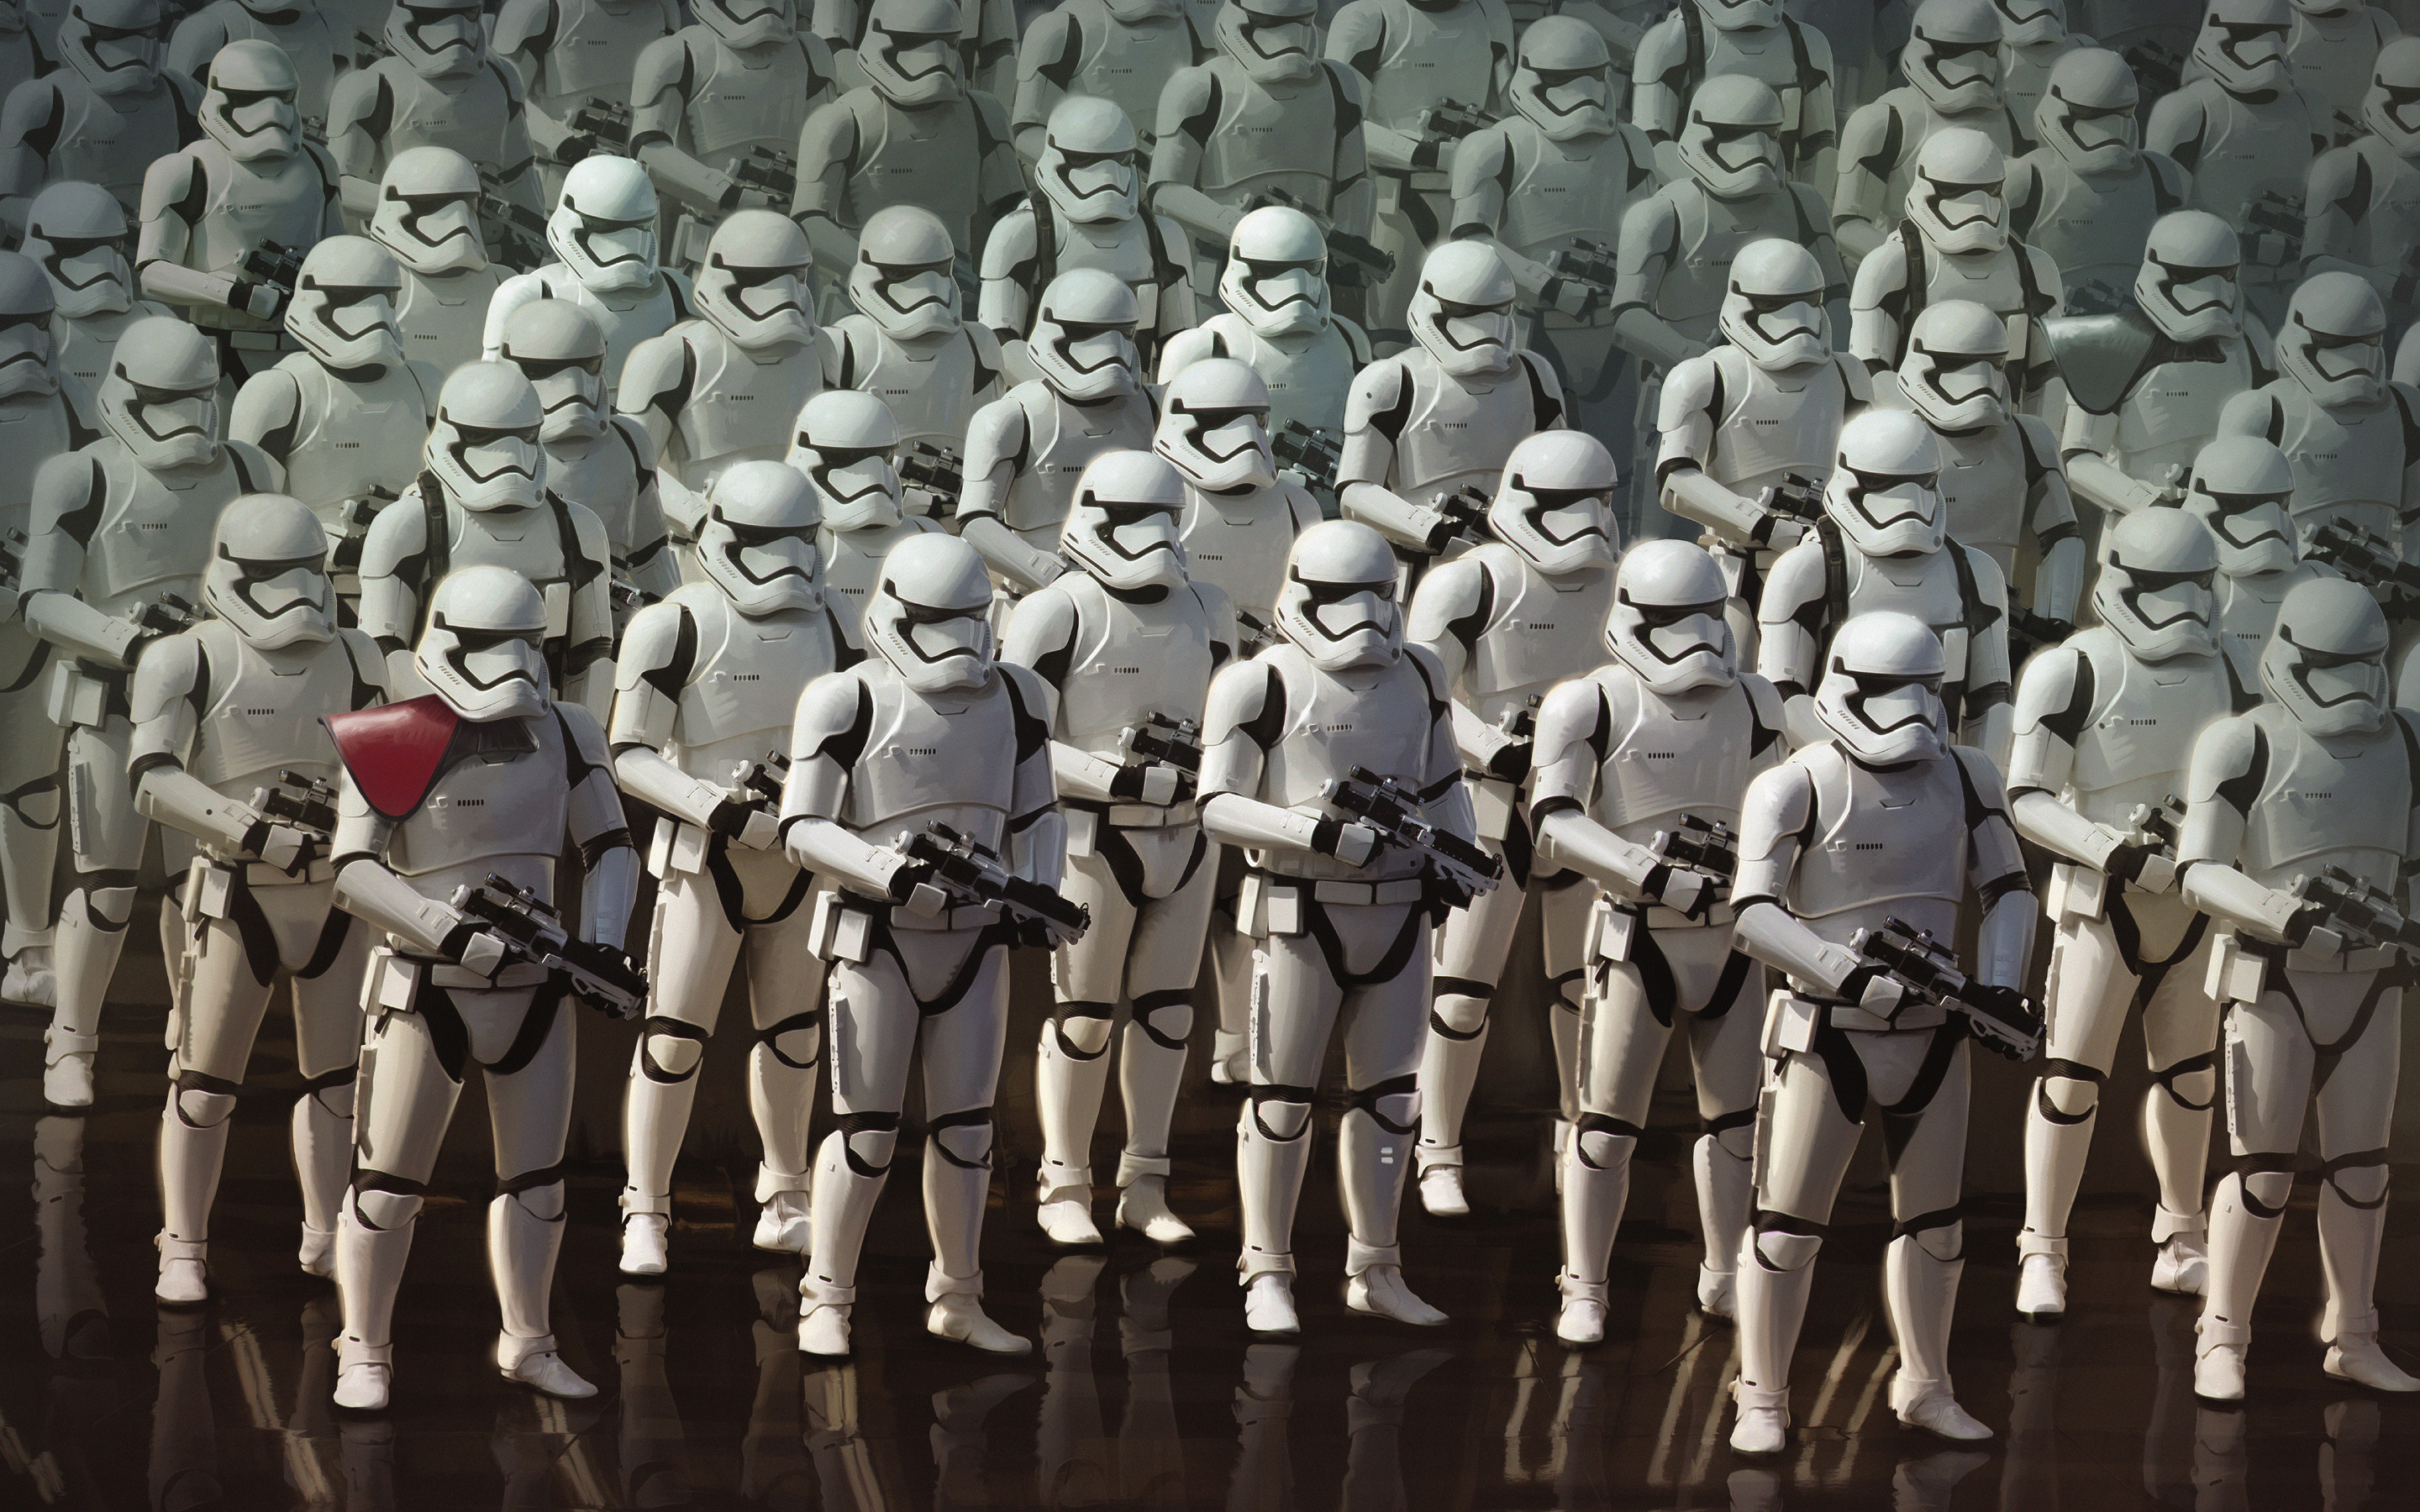 Res: 2880x1800, Star Wars The Force Awakens Stormtroopers Wallpaper